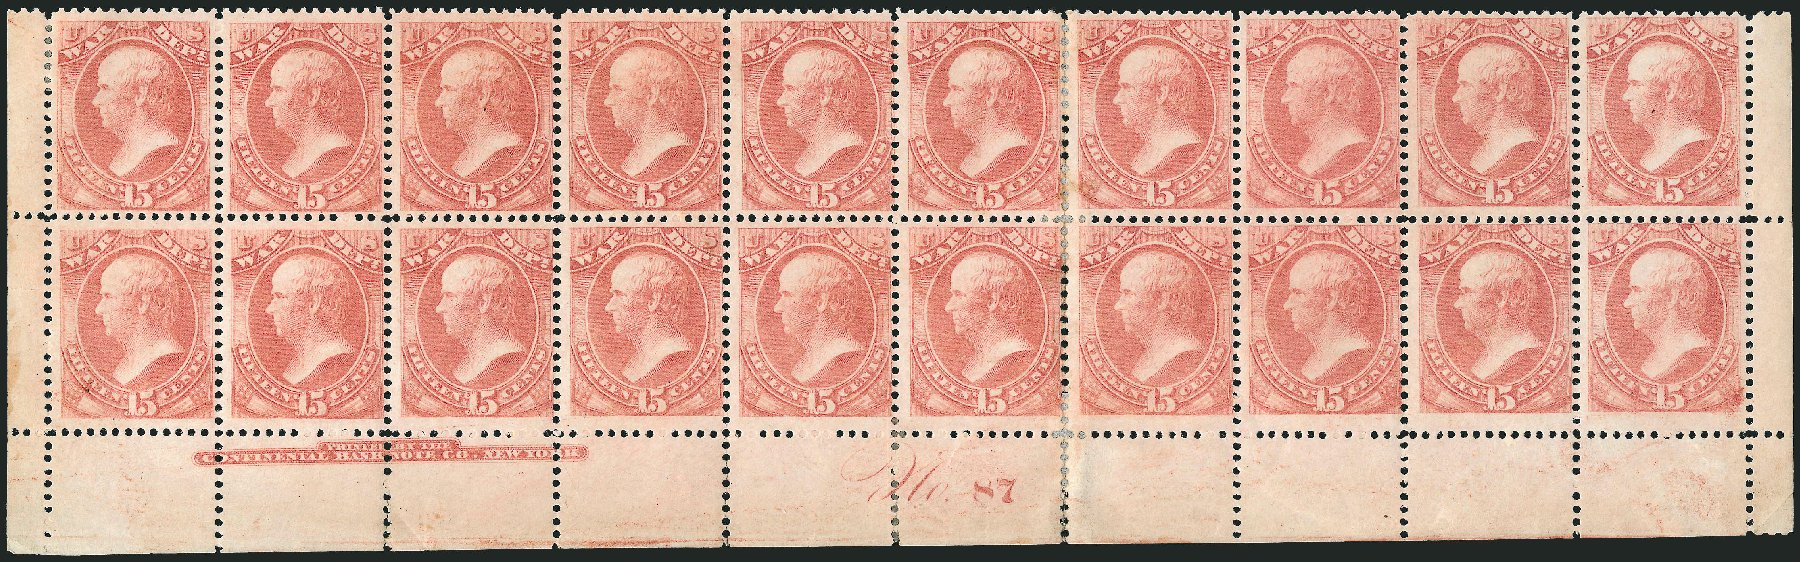 US Stamp Price Scott Catalogue # O90: 1873 15c War Official. Robert Siegel Auction Galleries, Nov 2014, Sale 1085, Lot 4166